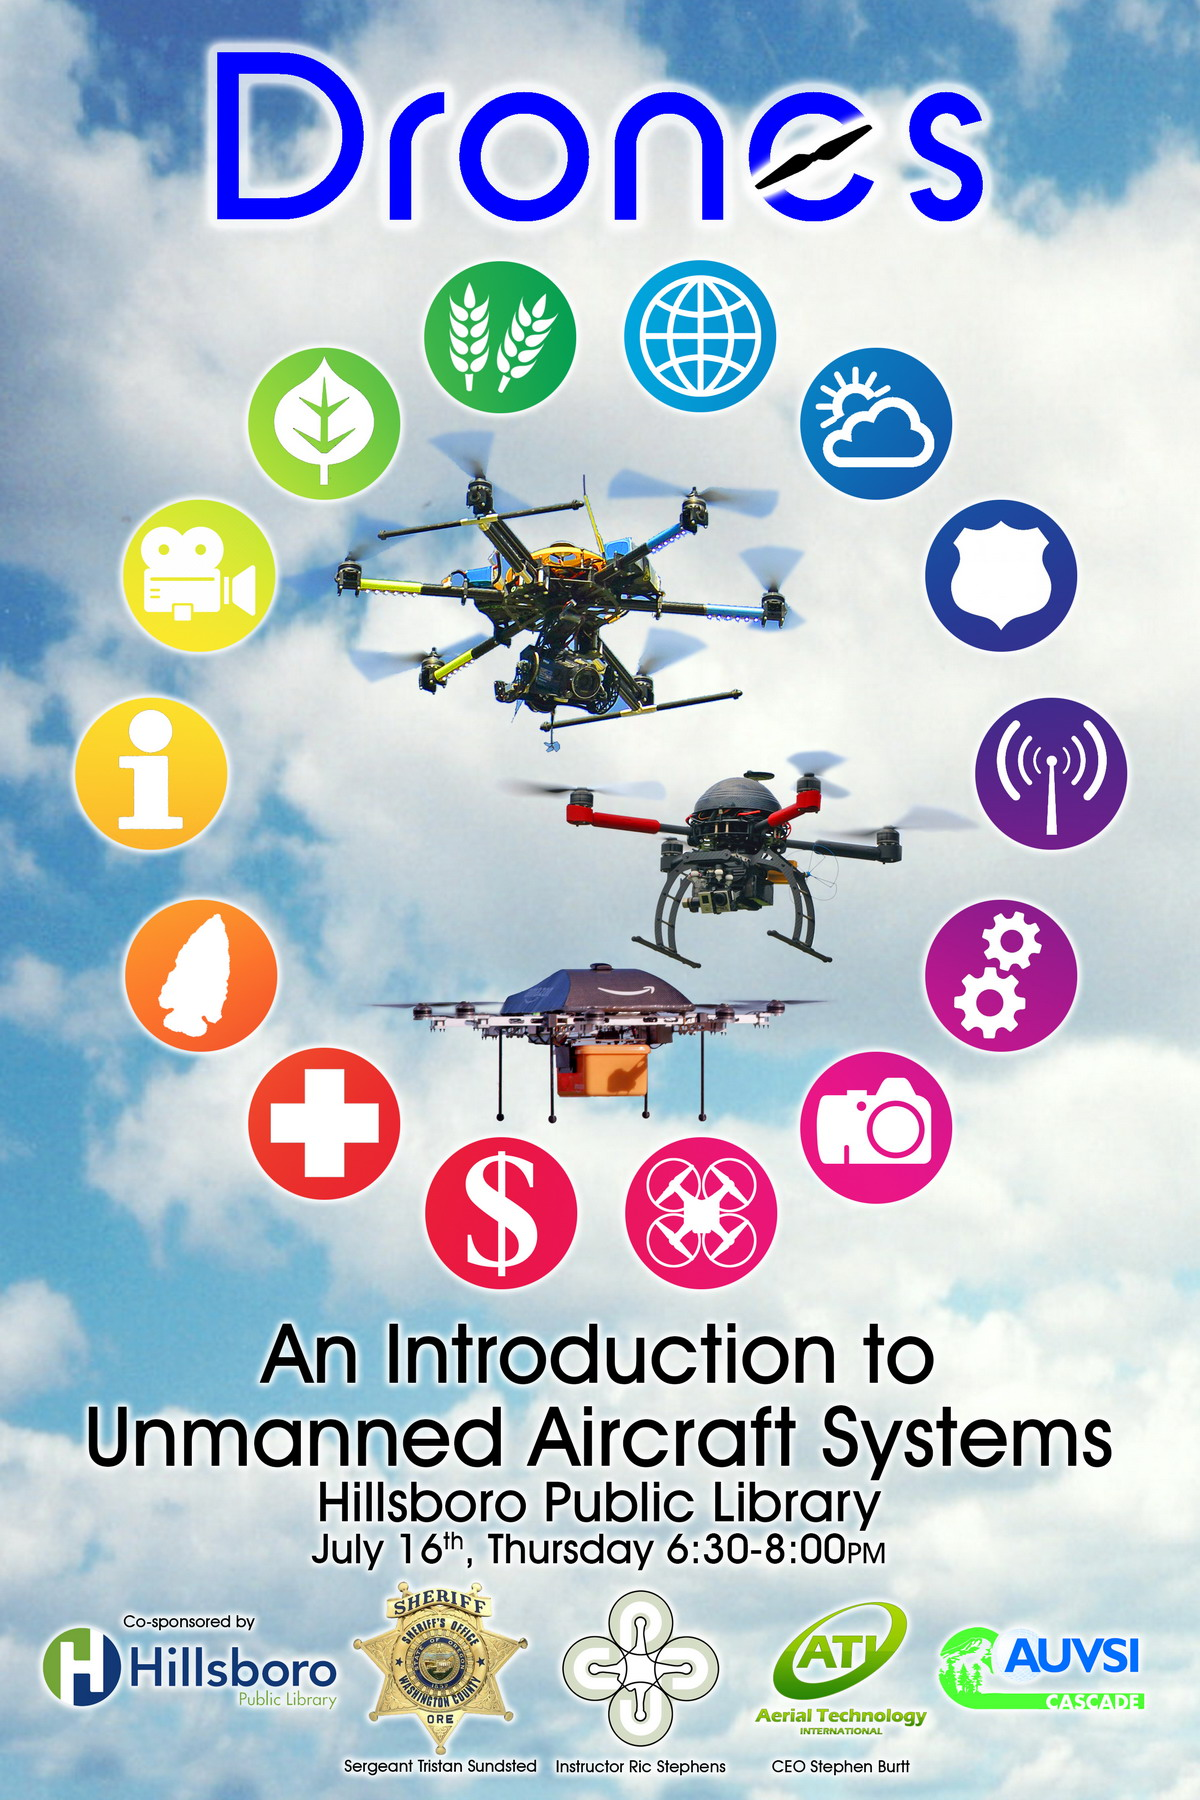 Hillsboro Public Library Drones Introduction Poster sm